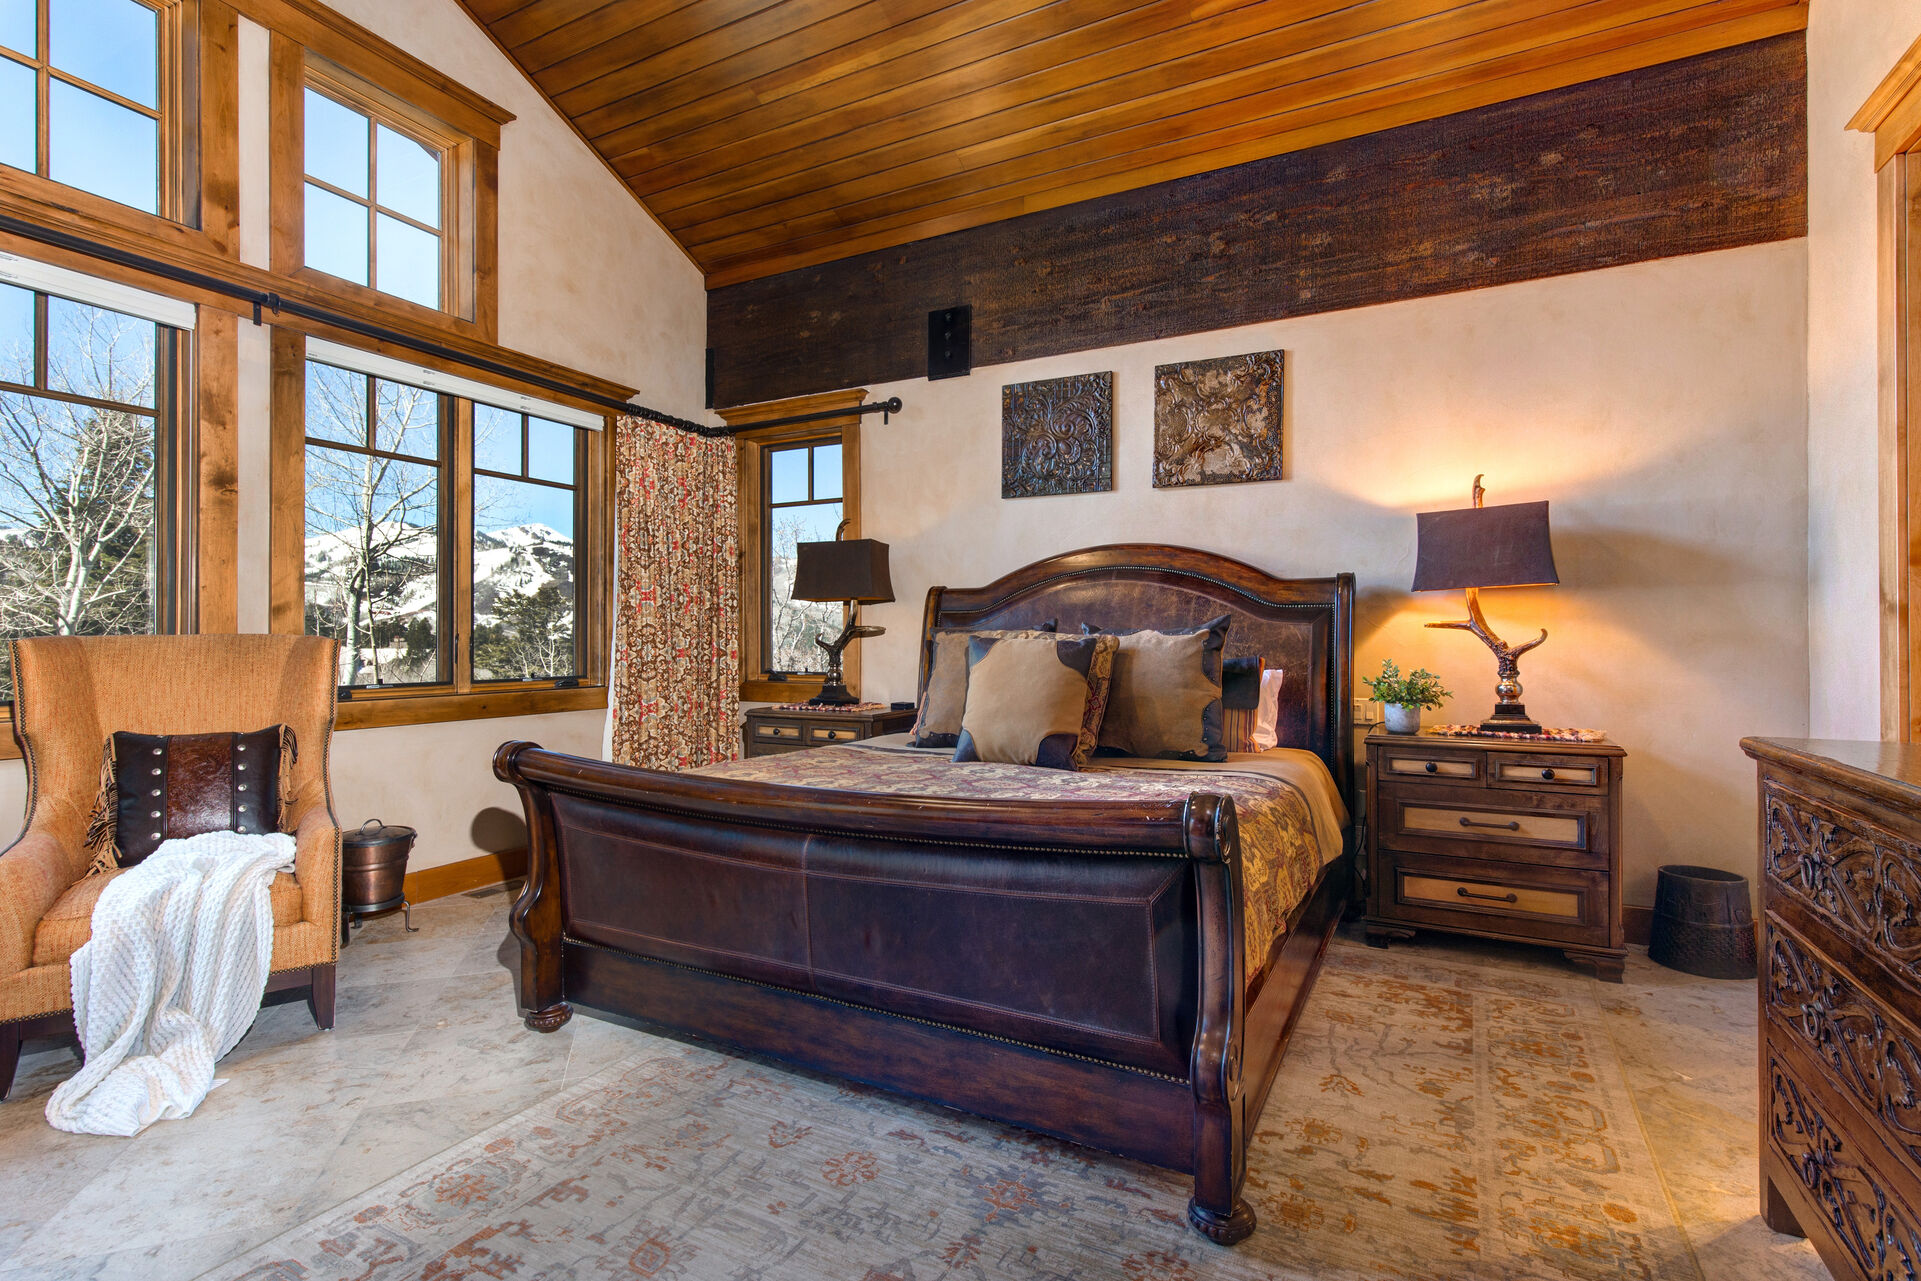 Upper Level Grand Master Bedroom Vaulted Wood Ceilings and Gorgeous Views